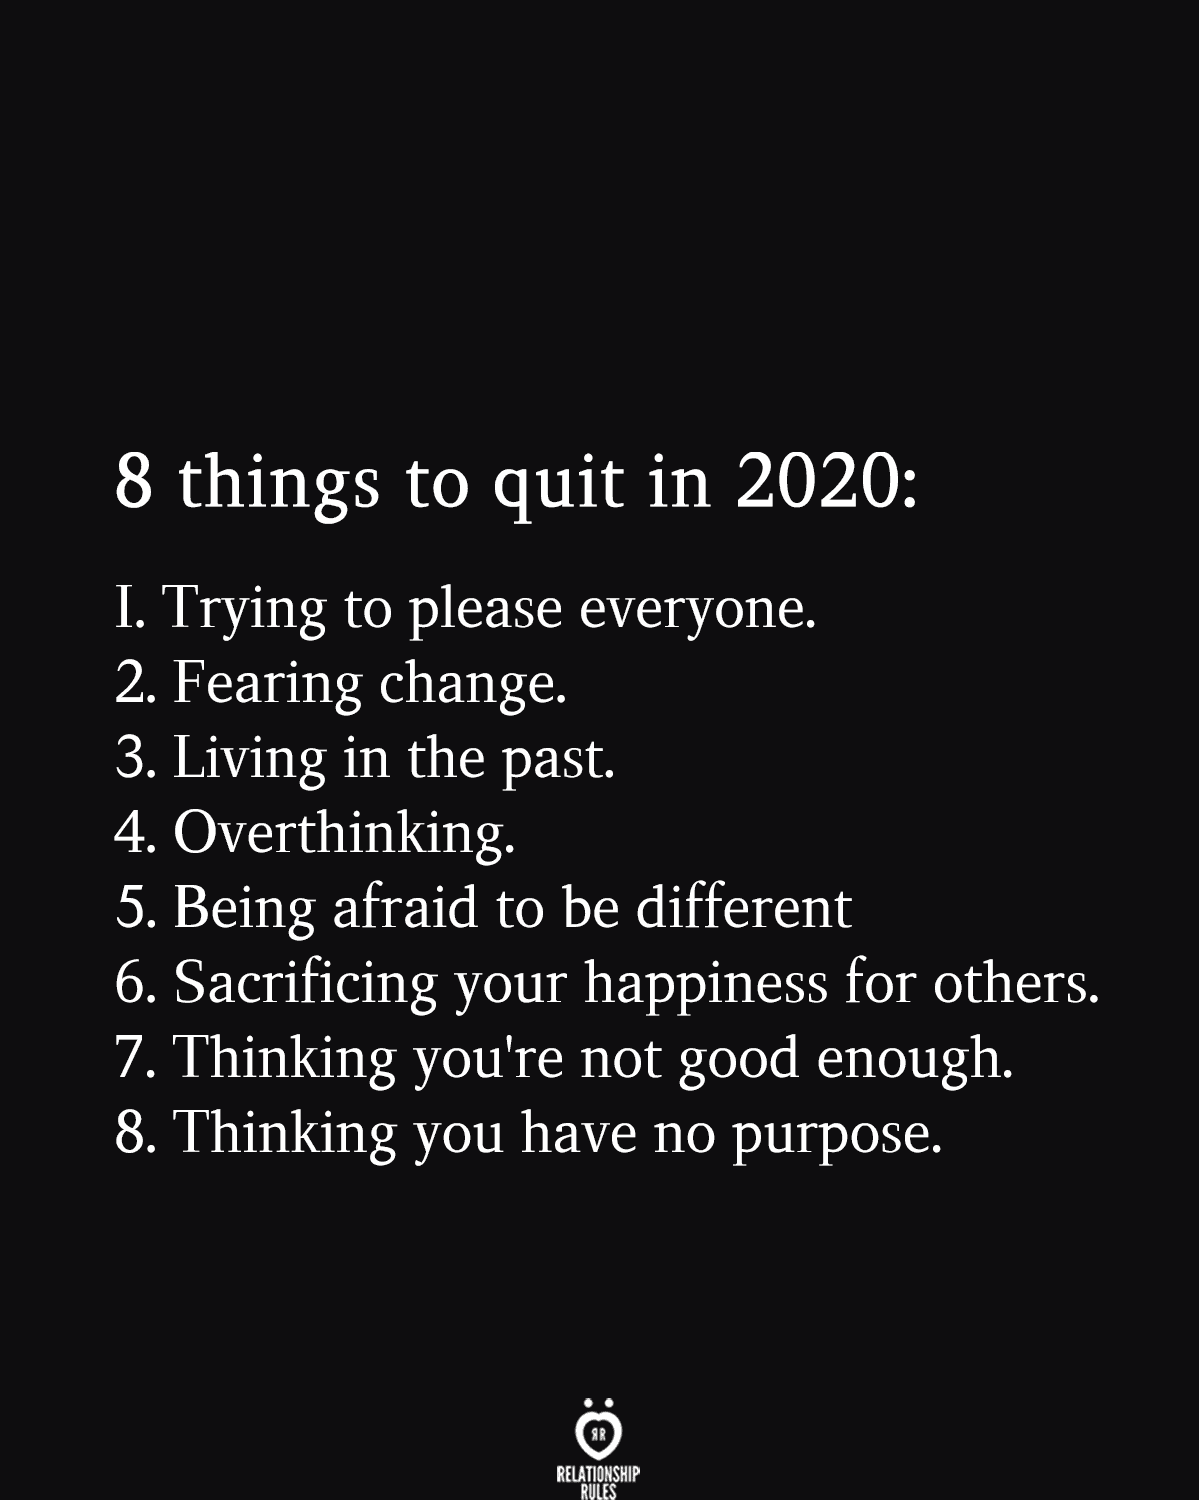 8 things to quit in 2020